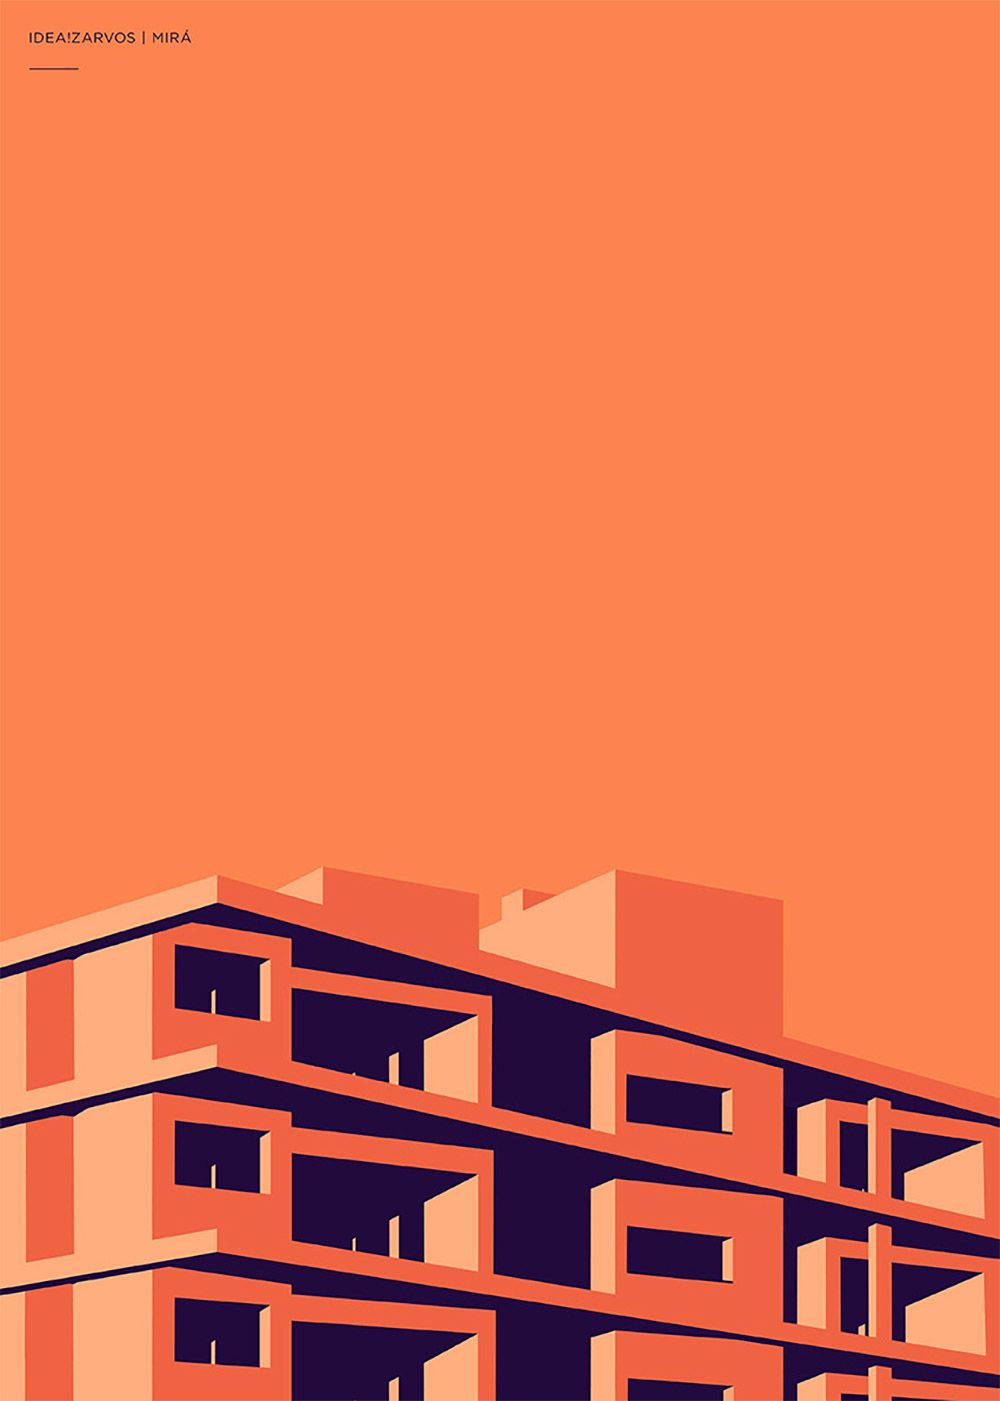 Colorful Architectural Illustrations by Henrique Folster | Inspiration Grid